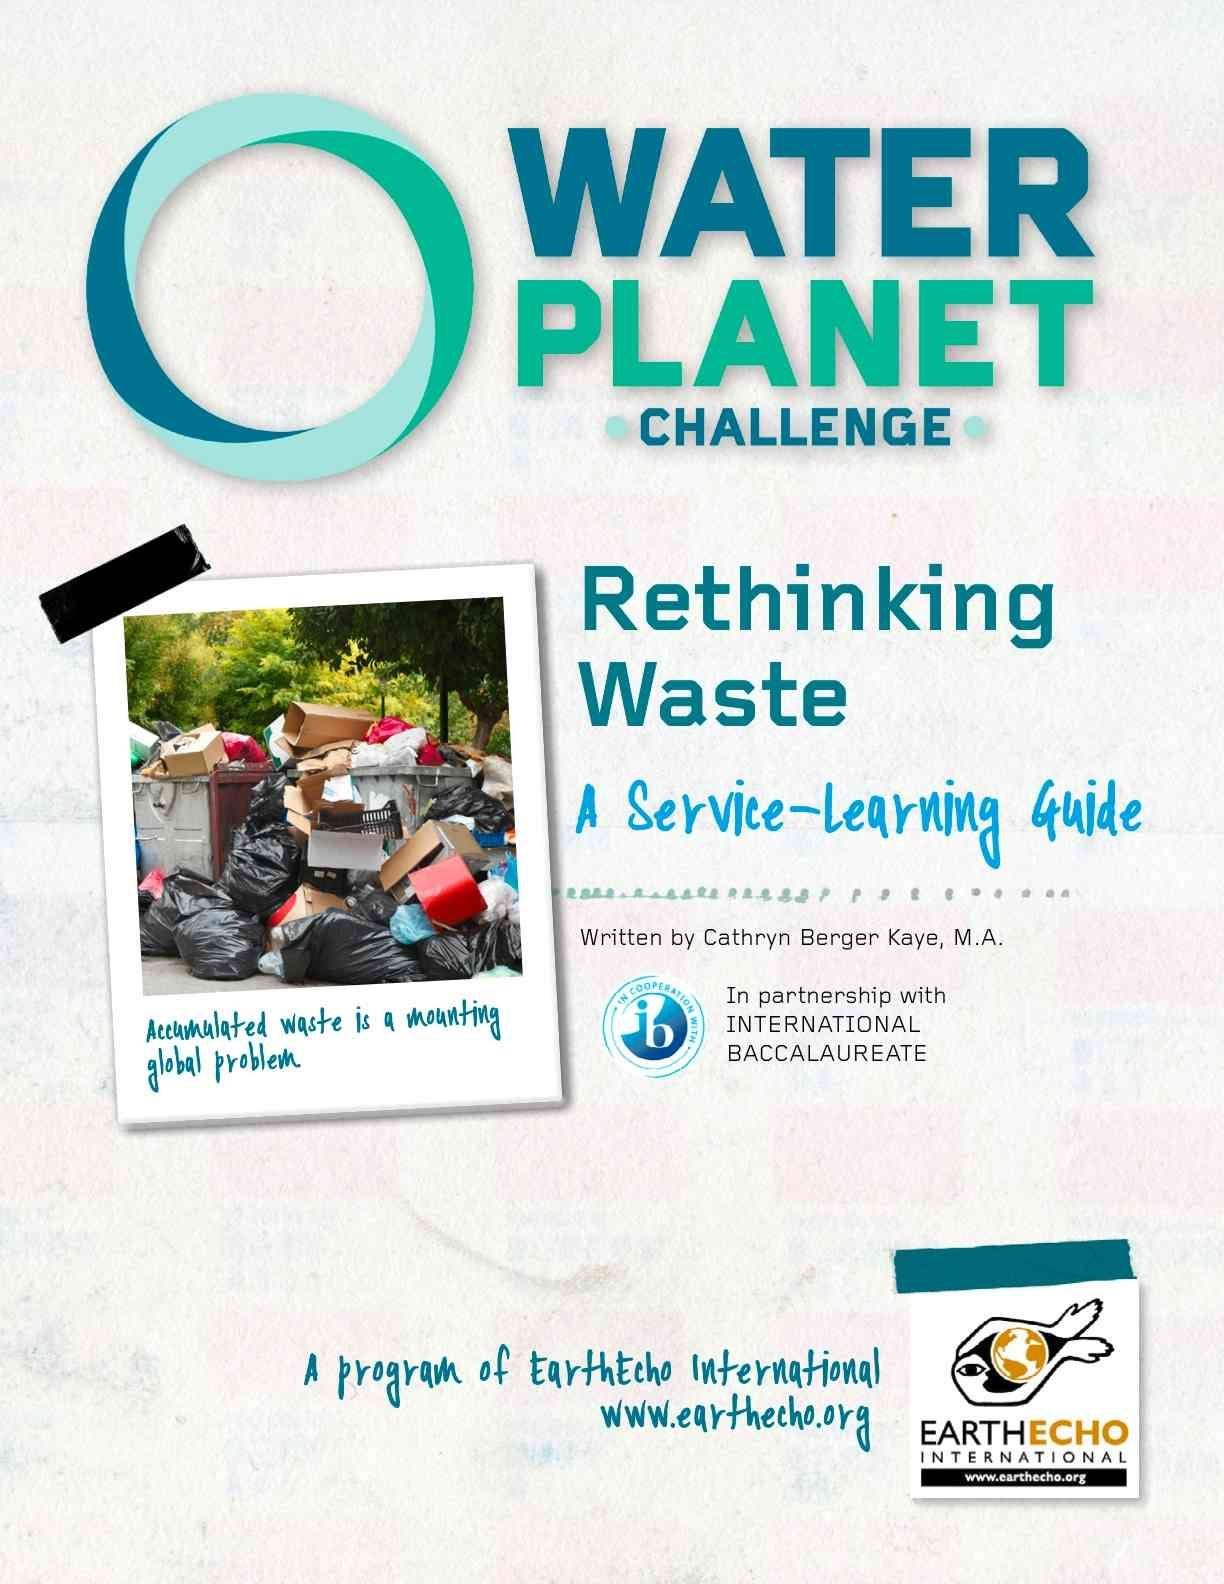 great action guides for service learning to help our environment